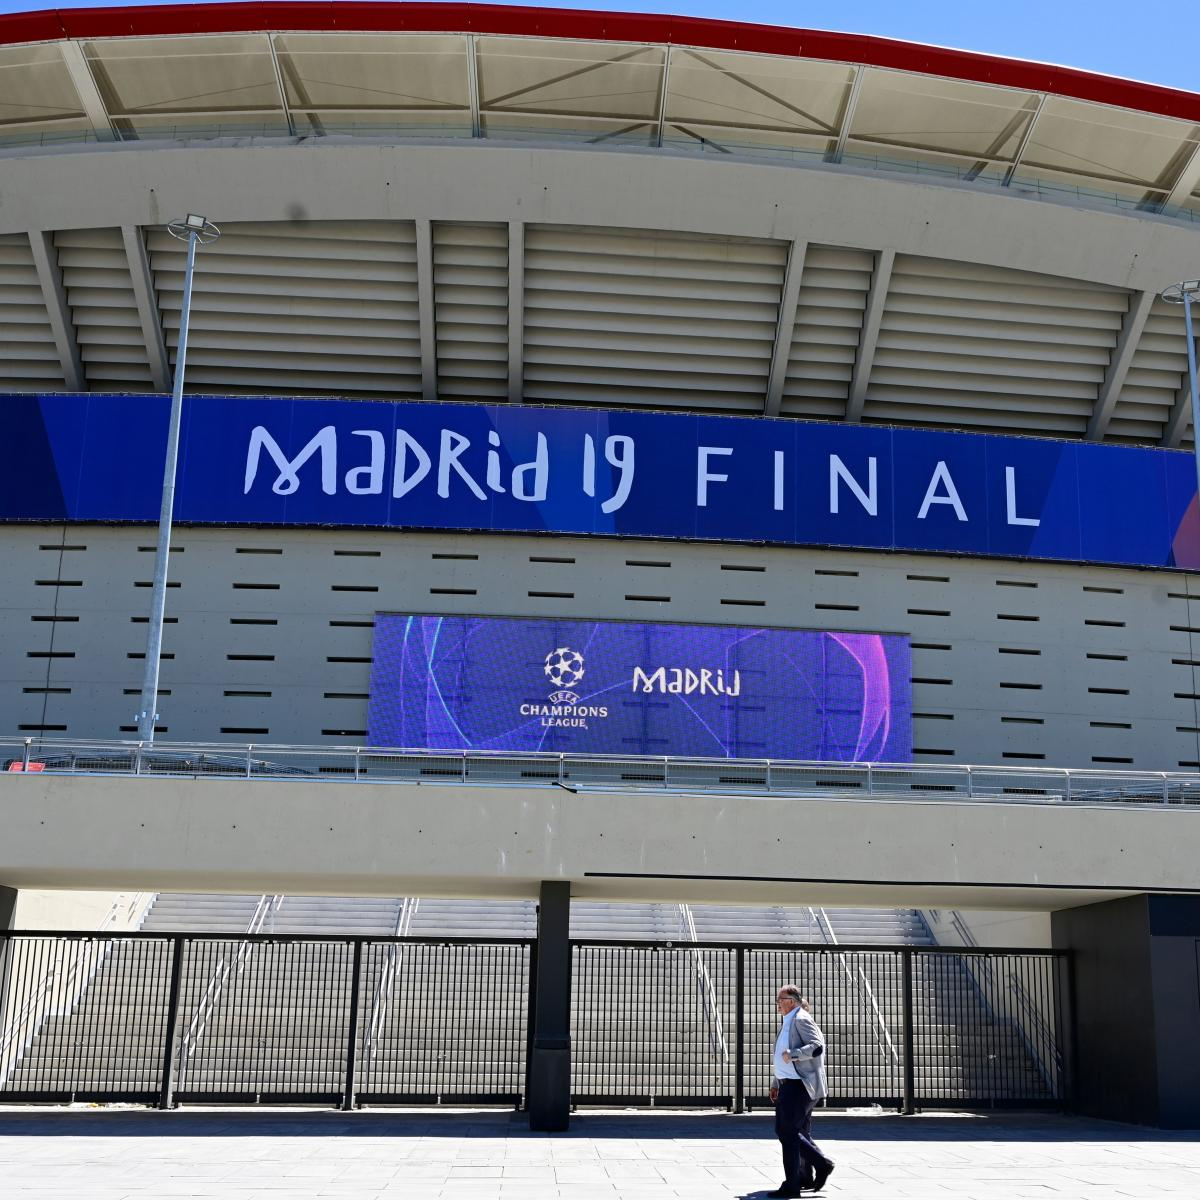 Champions League 2019: Final Odds, Live Stream, TV